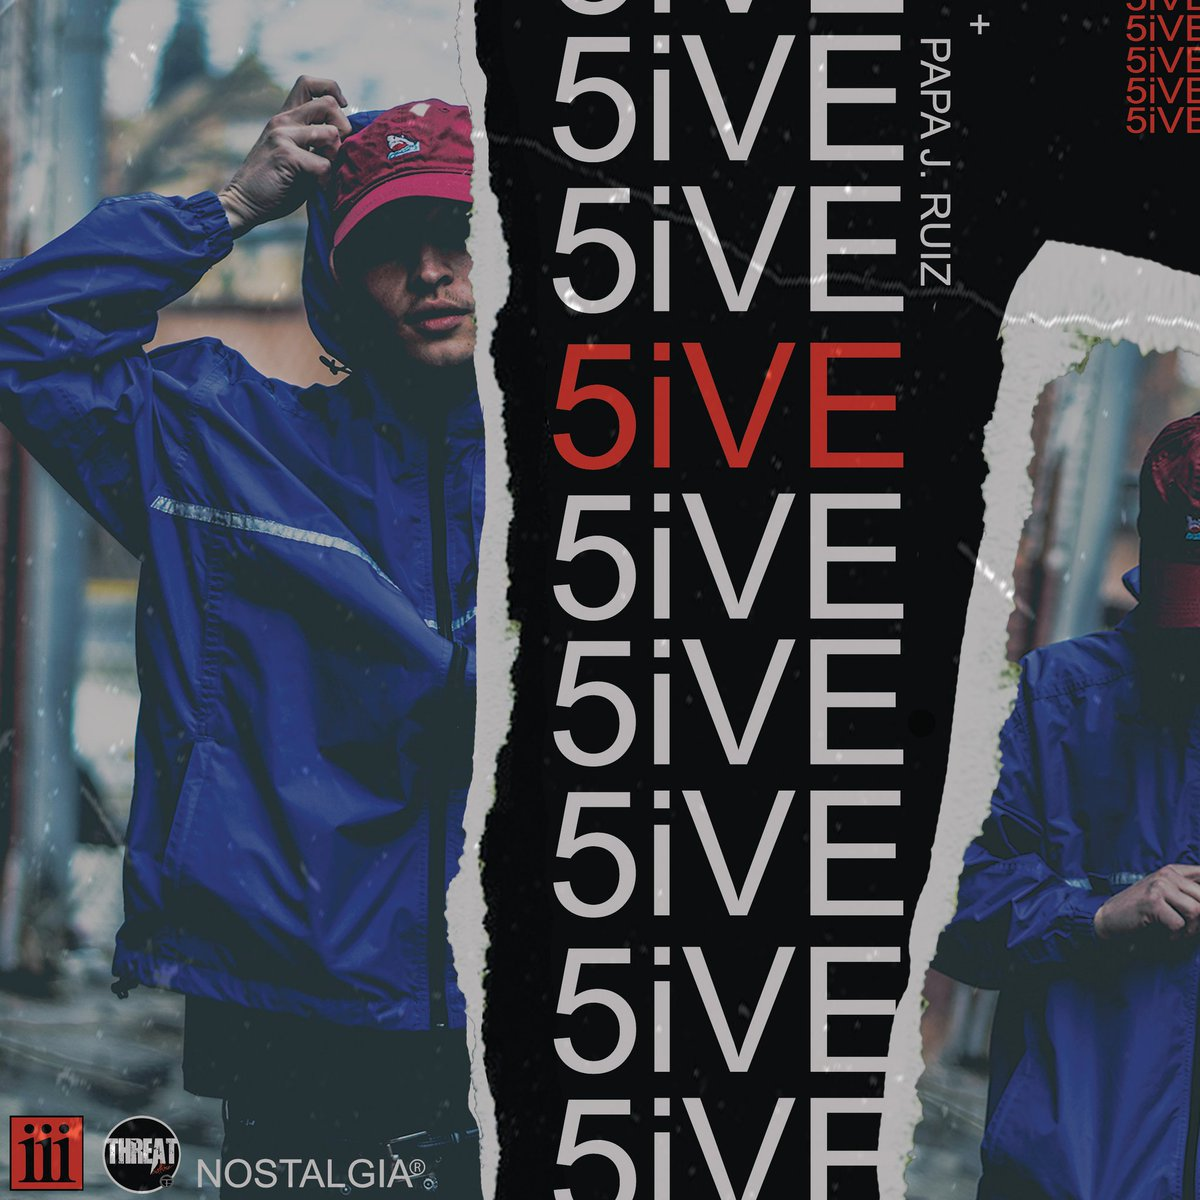 HERE YOU ALL GO NEW EP ONLY ON YOUTUBE !  🖑5iVE  5 new songs all on 1 track  Every Lyric is real  #iii #THREAT   https:// youtu.be/_cRFoW_sHkw  &nbsp;  <br>http://pic.twitter.com/lUWq3UyT7F